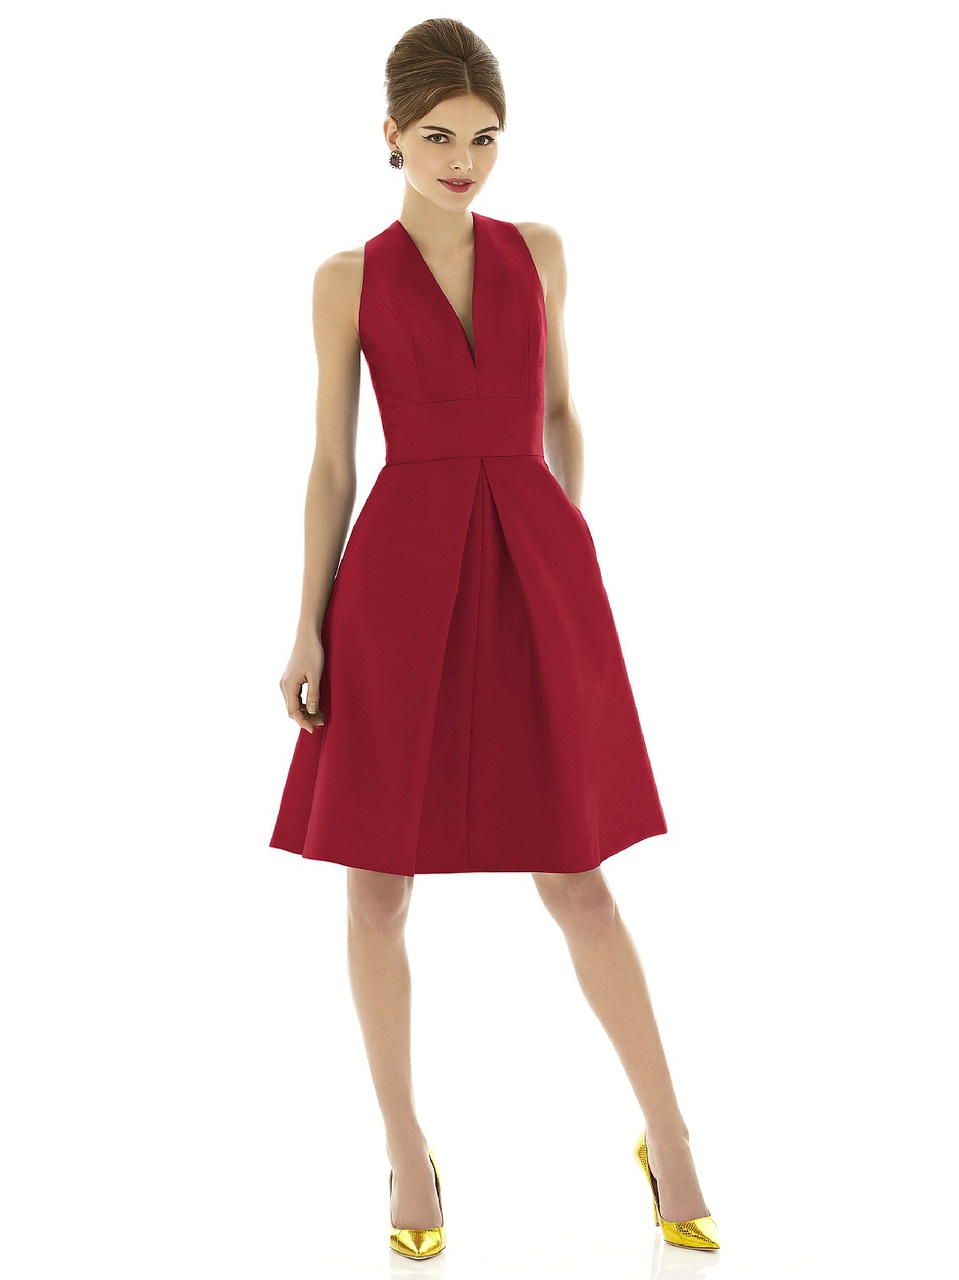 Alfred Sung Style D610  Fabric: Dupioni Cocktail length v-neck dupioni dress w/ inset waistband and inverted pleat at front and back skirt. Pockets at side seams of skirt. Also available full length as style D611.